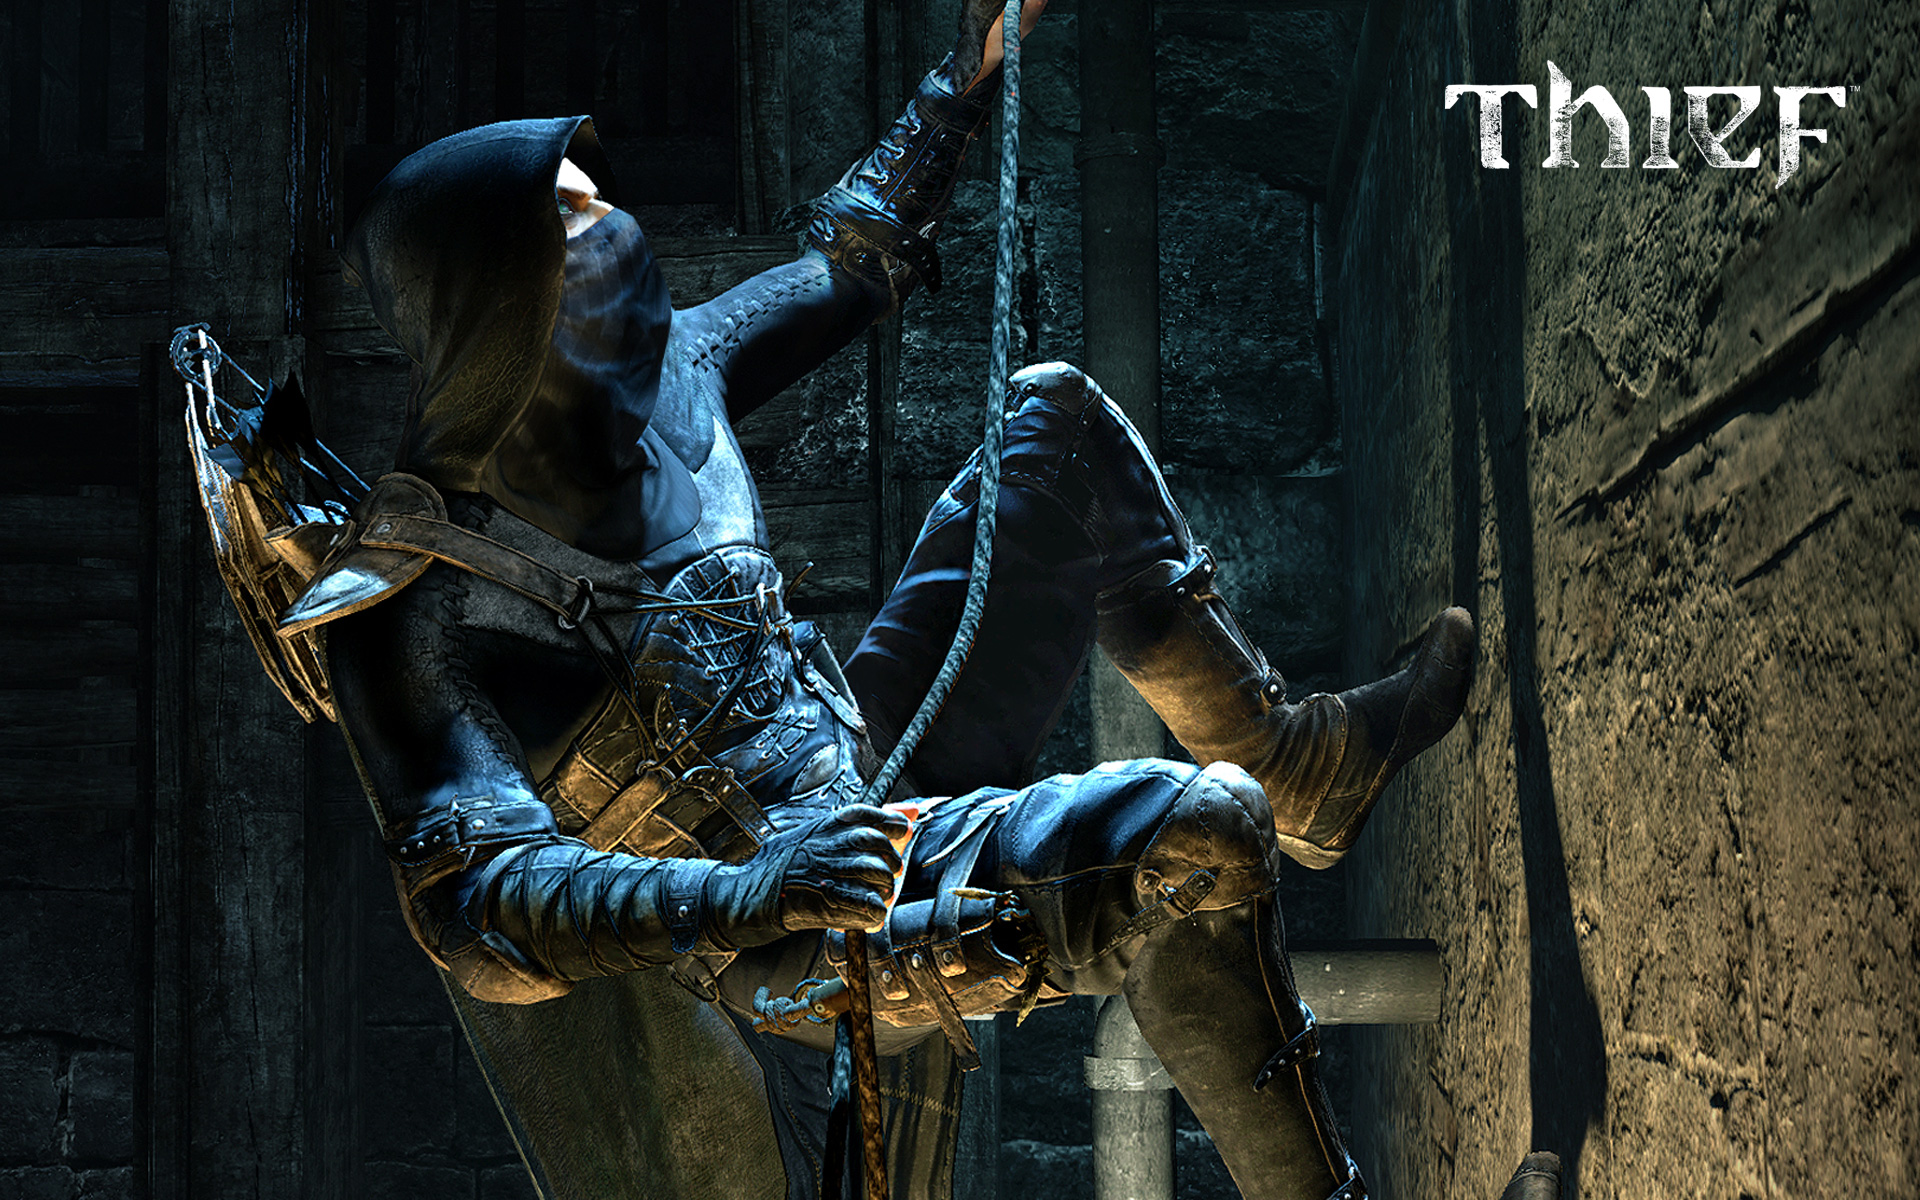 thief hd wallpaper | background image | 1920x1200 | id:419799